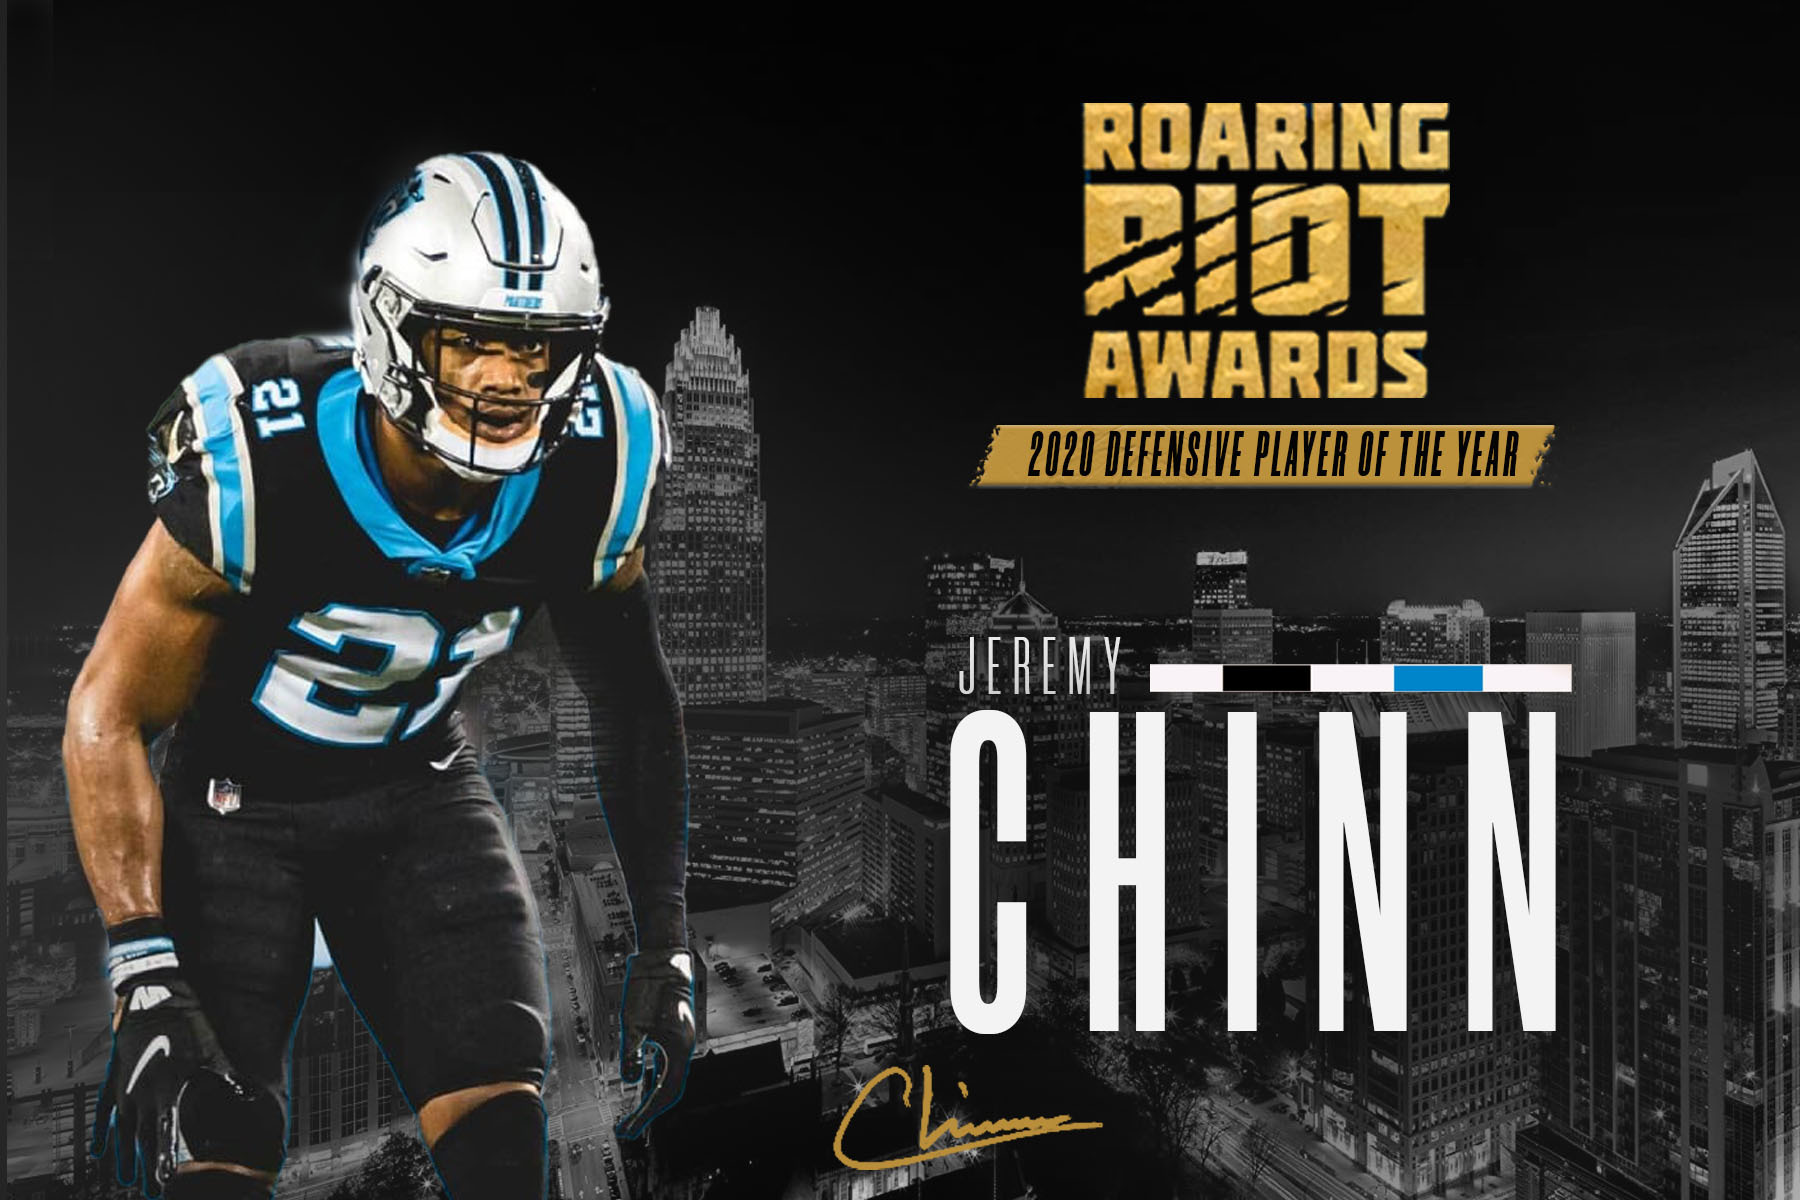 Jeremy Chinn Wins 2020 Roaring Riot Defensive Player Of The Year Award